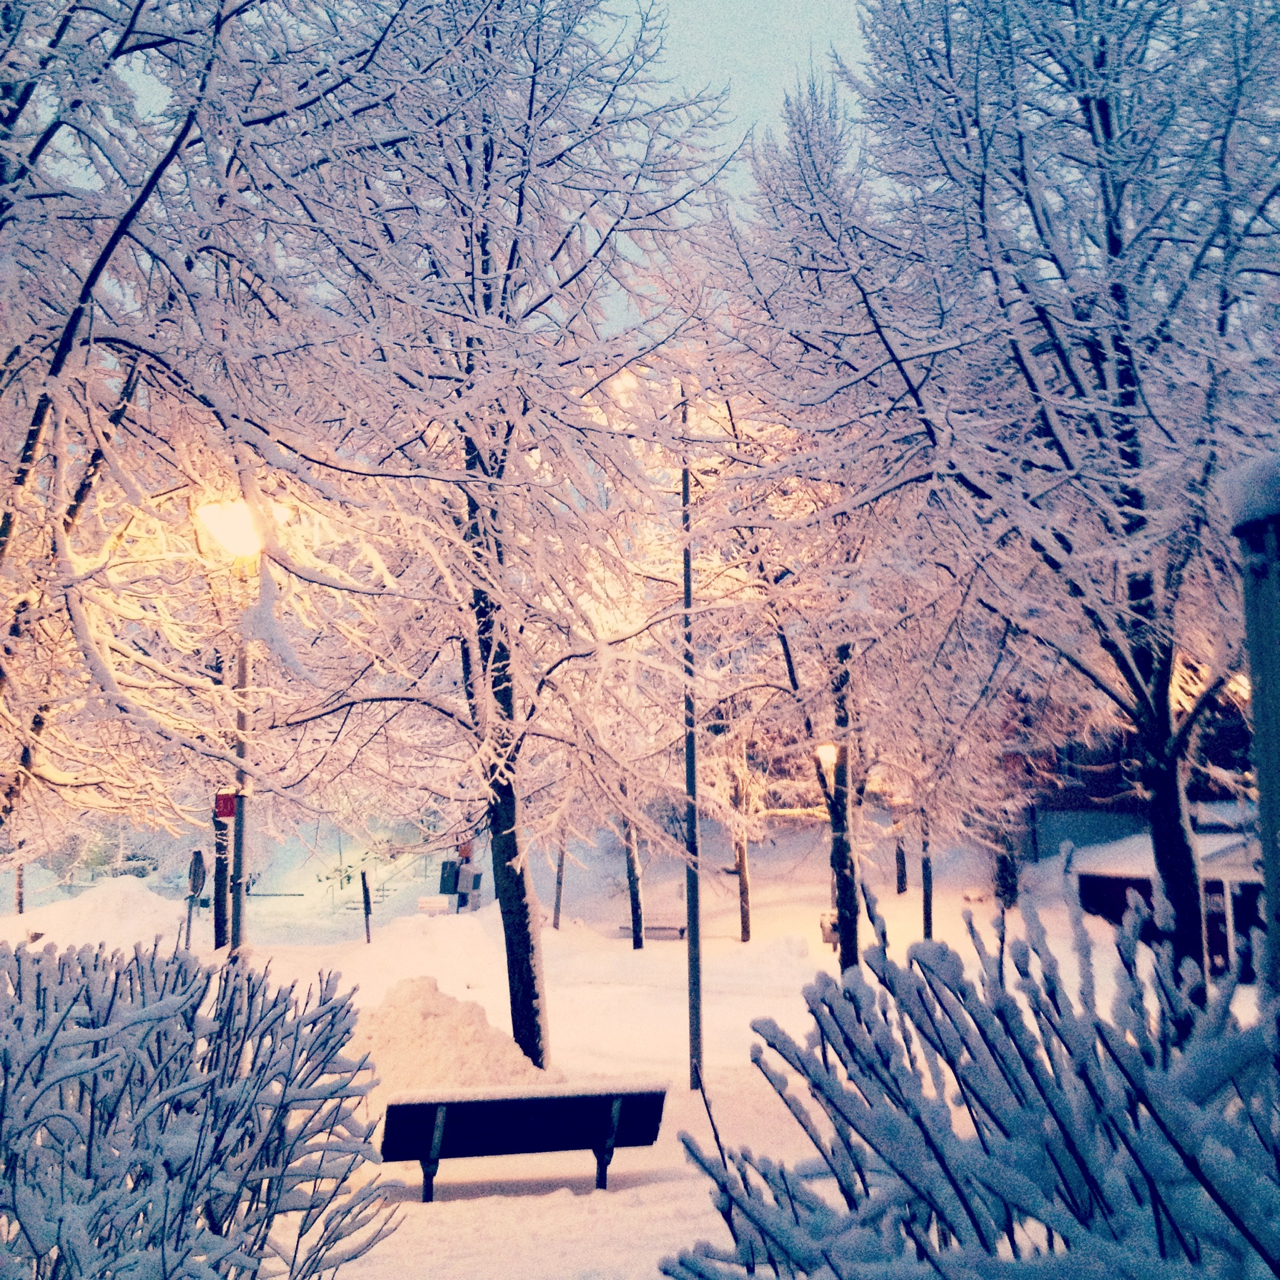 Winter And Snow Via Tumblr On We Heart It